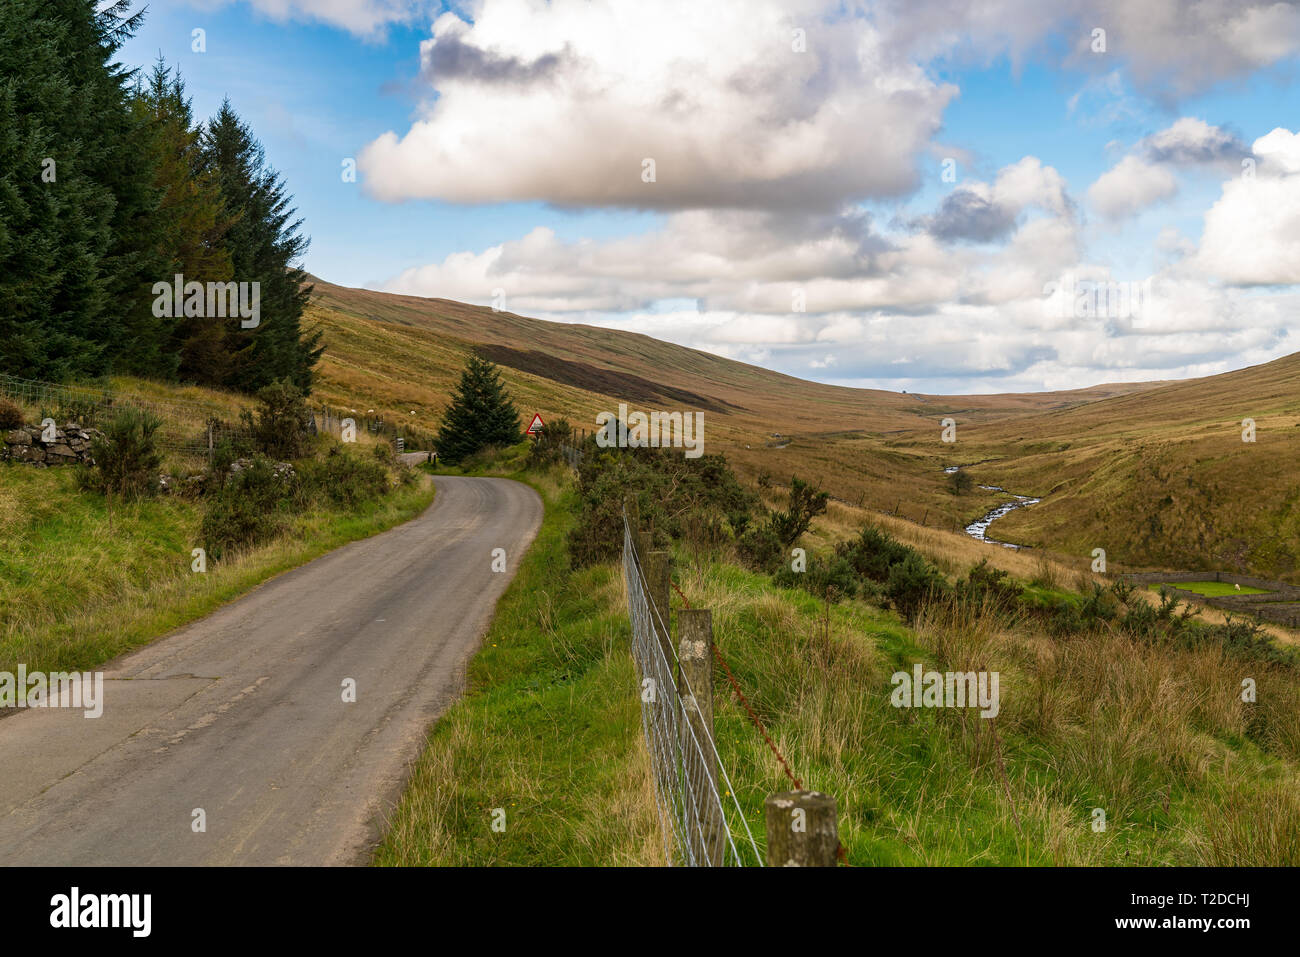 Rural road on a cloud day, near Ystradfellte in Powys, Wales, UK - Stock Image